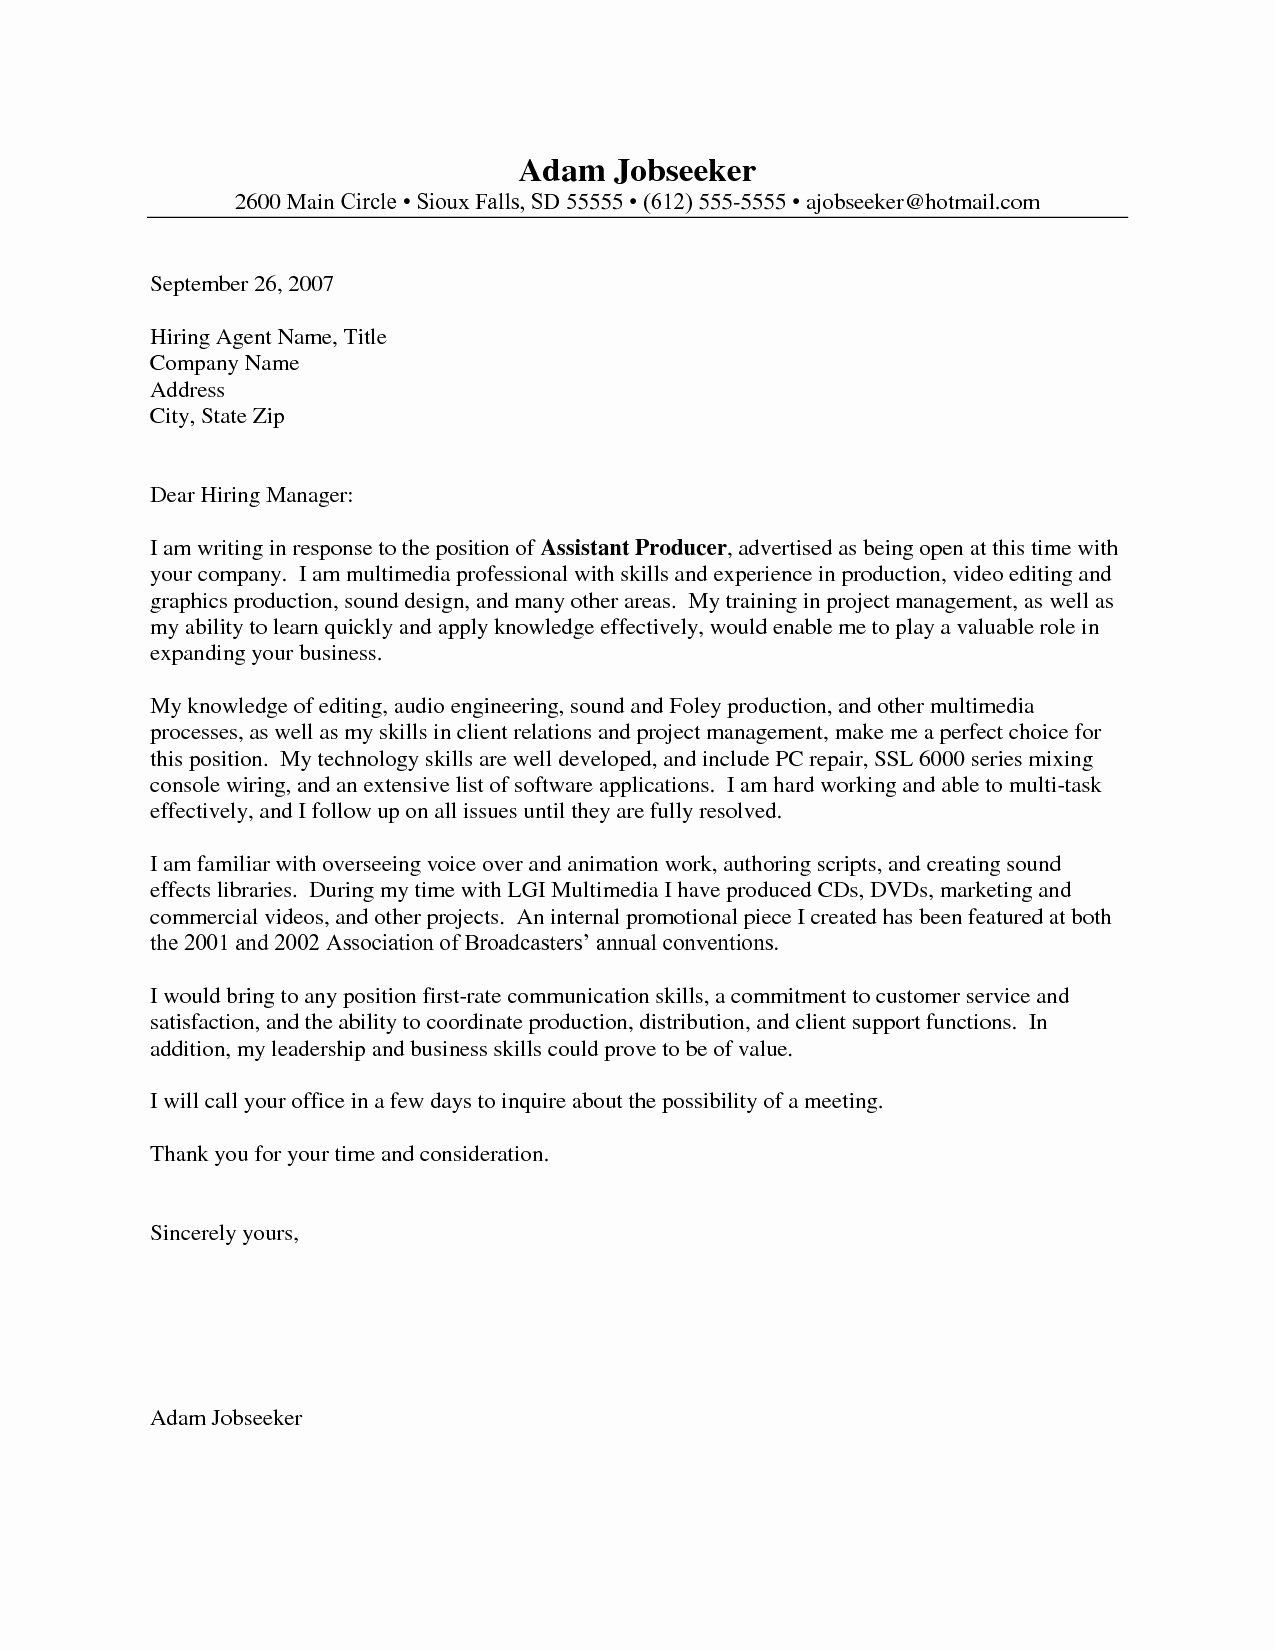 Cyber Security Cover Letter Cyber Security Student Resume Lovely Resume Cover Letters